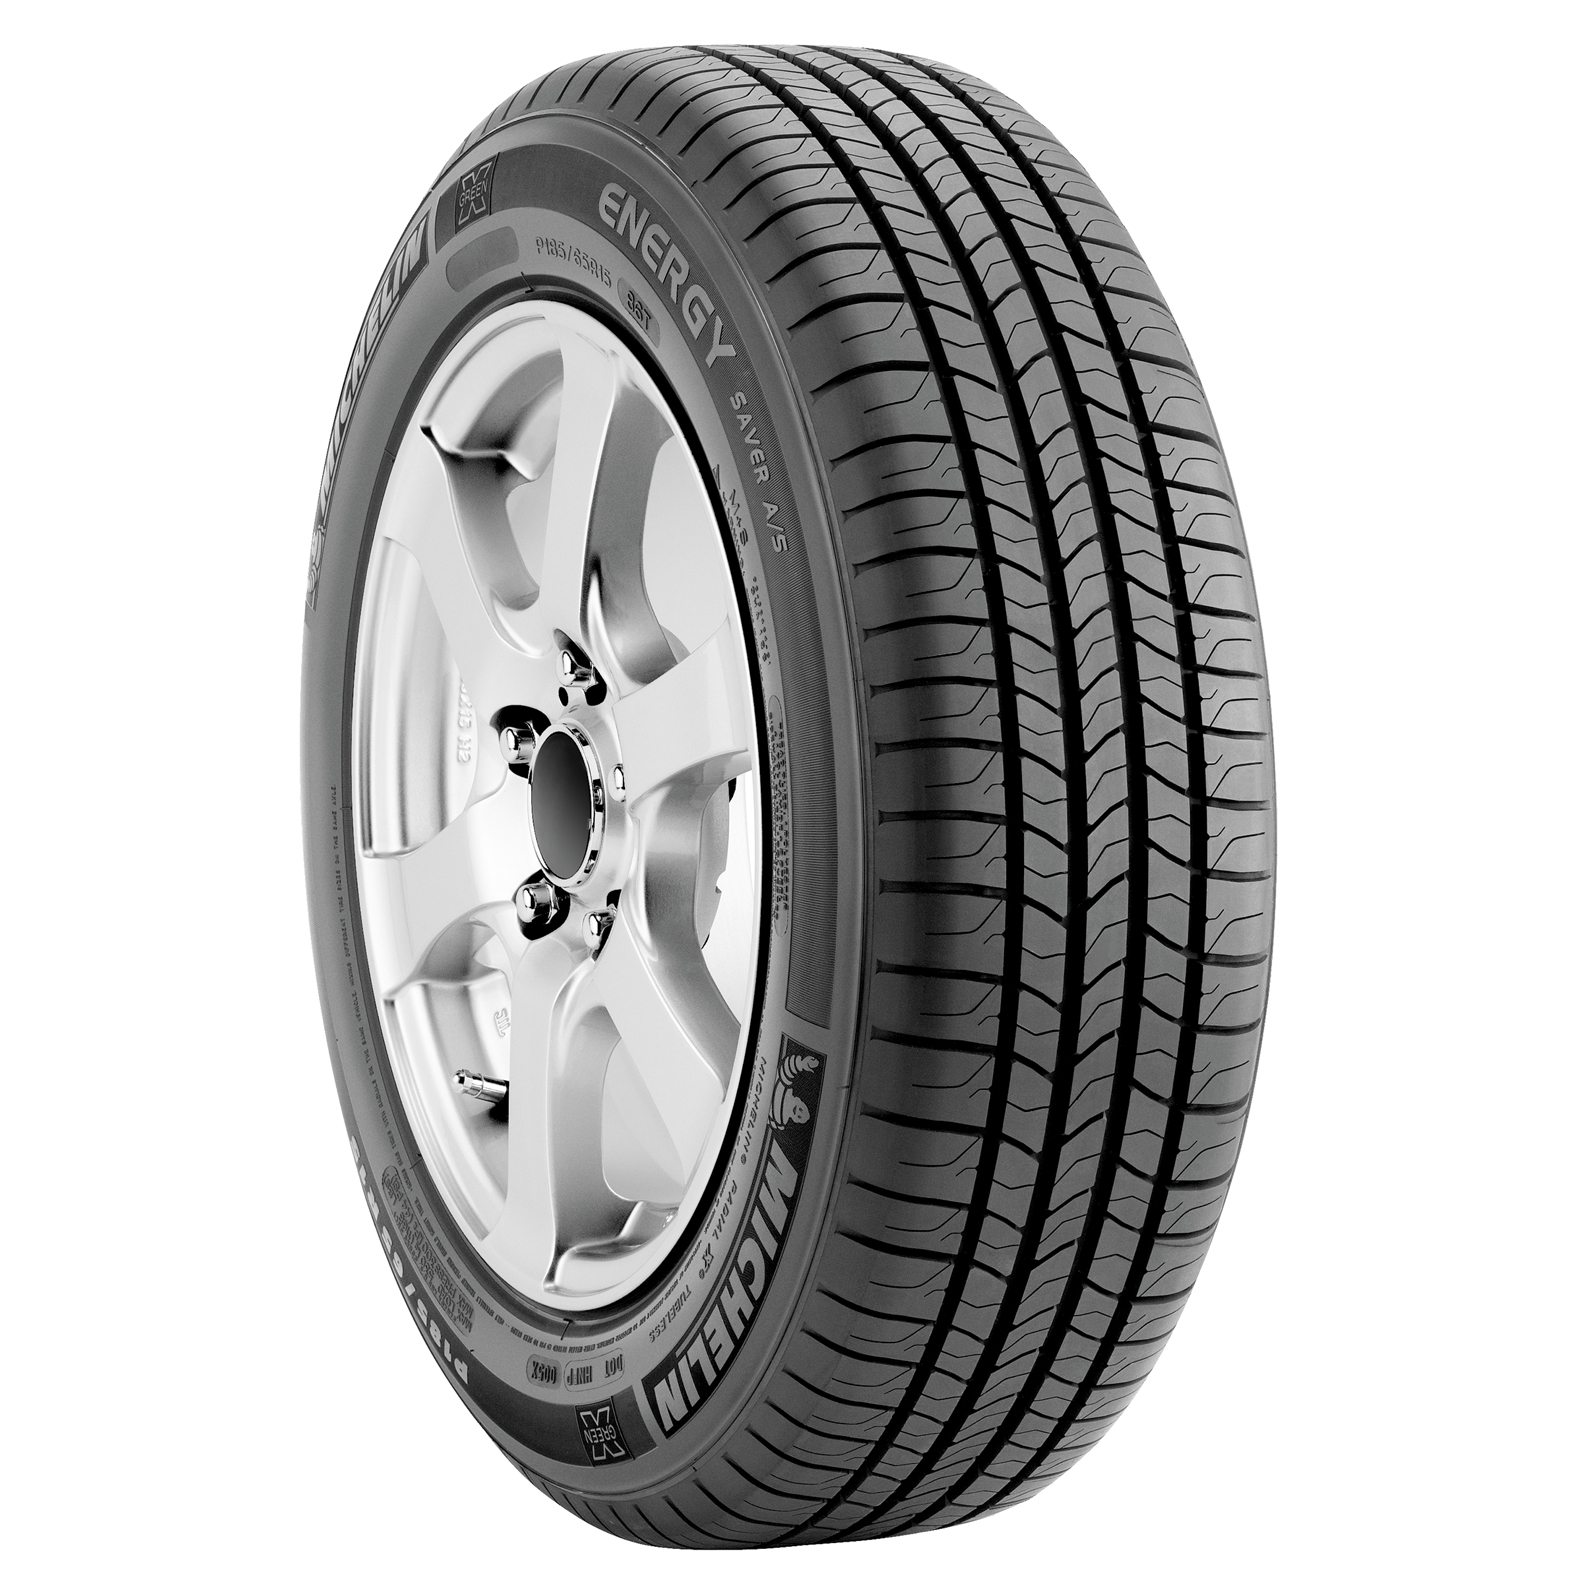 Michelin ENERGY SAVER A/S tire - angle